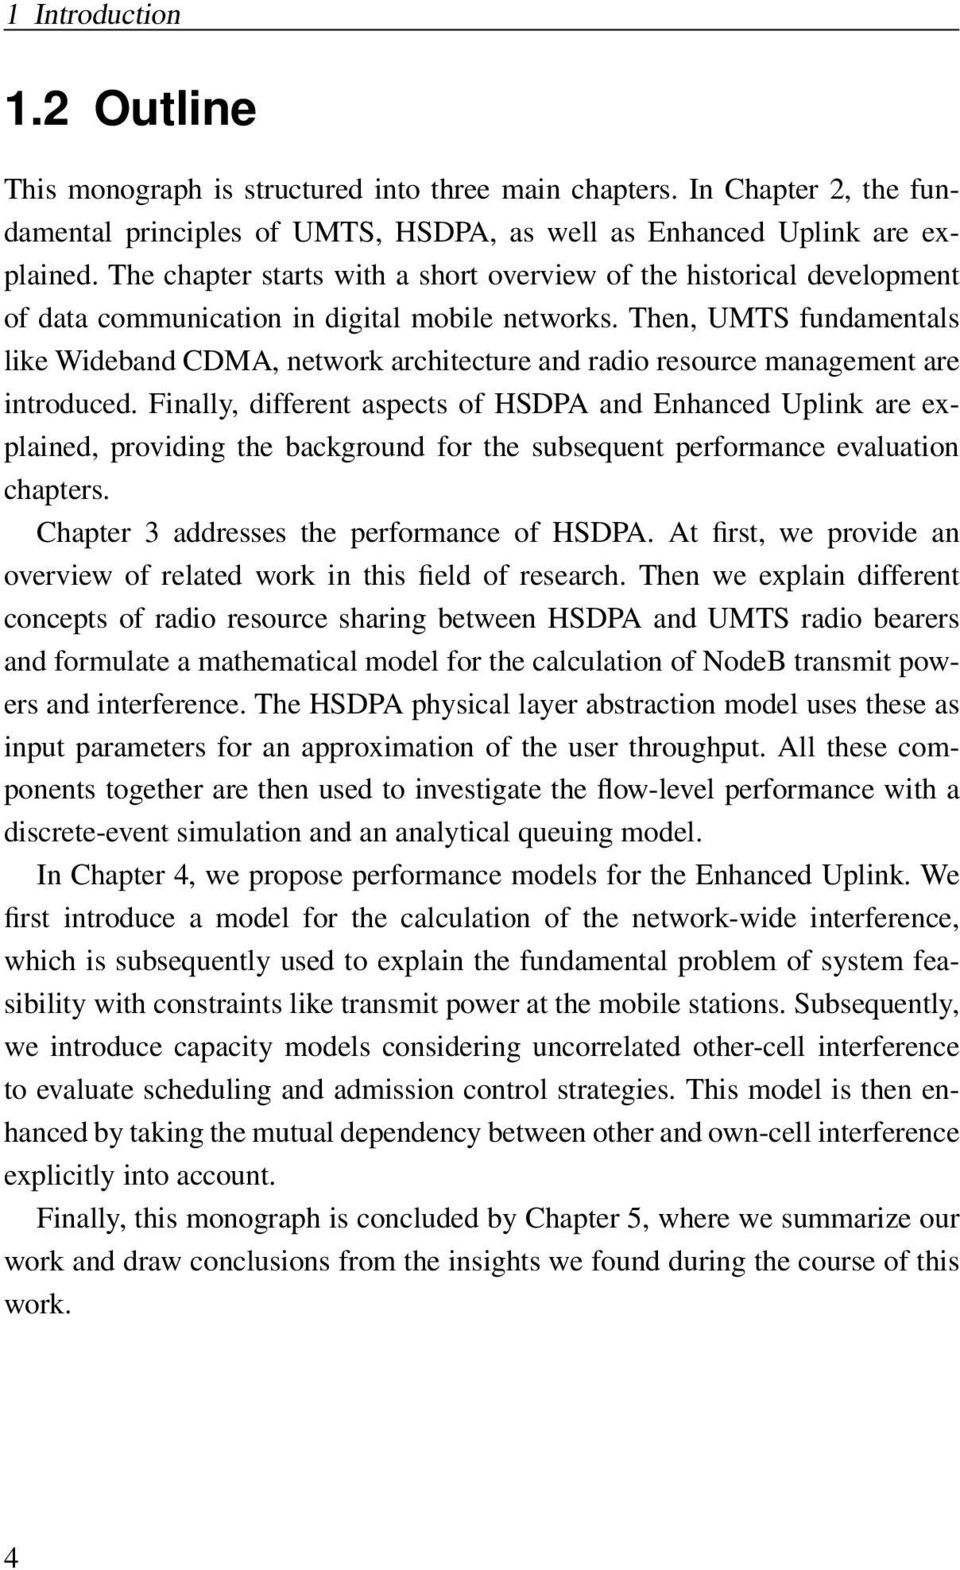 Then, UMTS fundamentals like Wideband CDMA, network architecture and radio resource management are introduced.